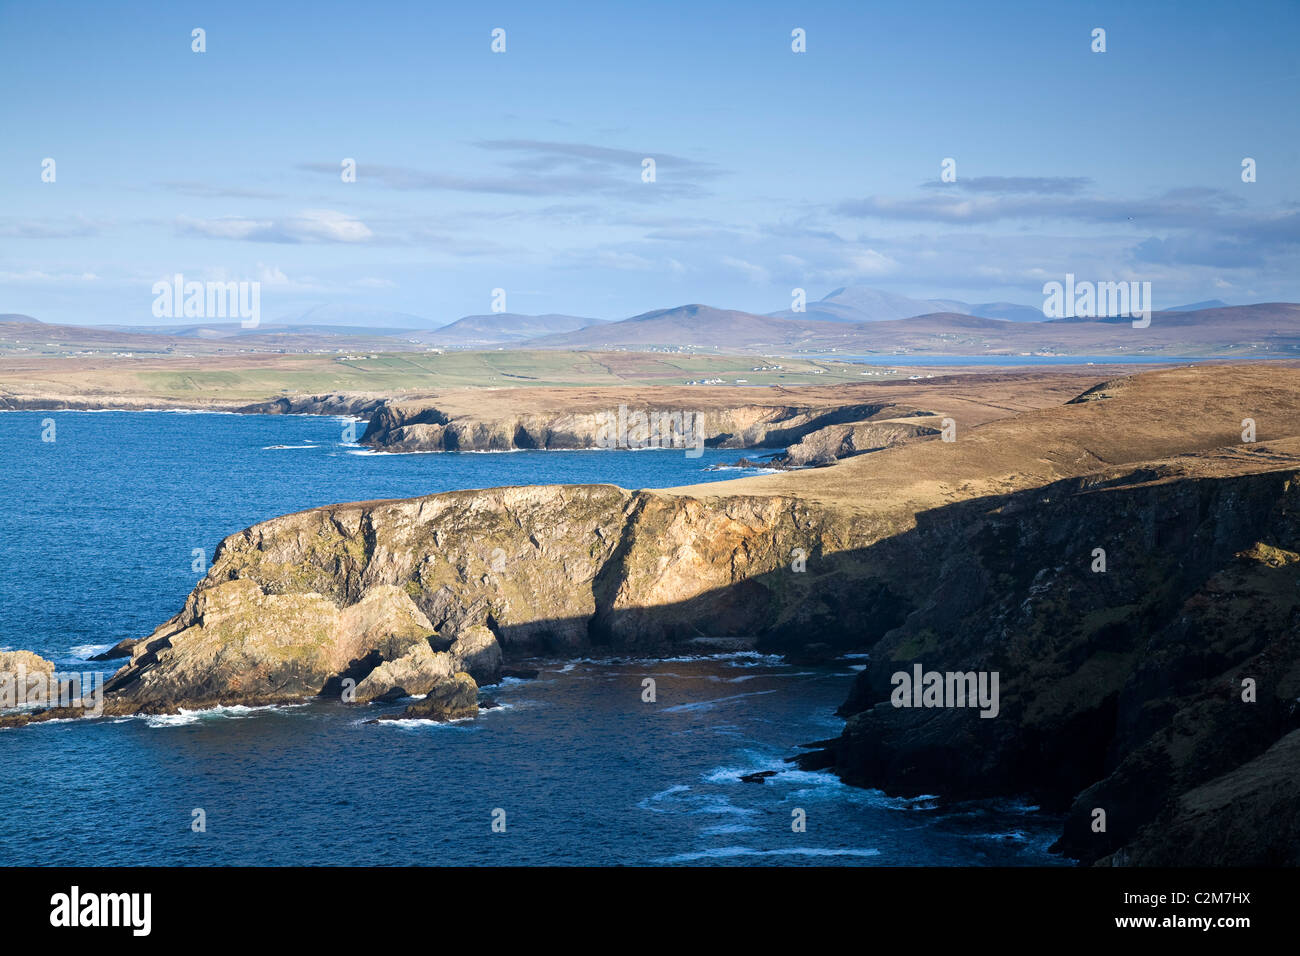 Coastline near Erris Head, Belmullet Peninsula, County Mayo, Ireland. - Stock Image